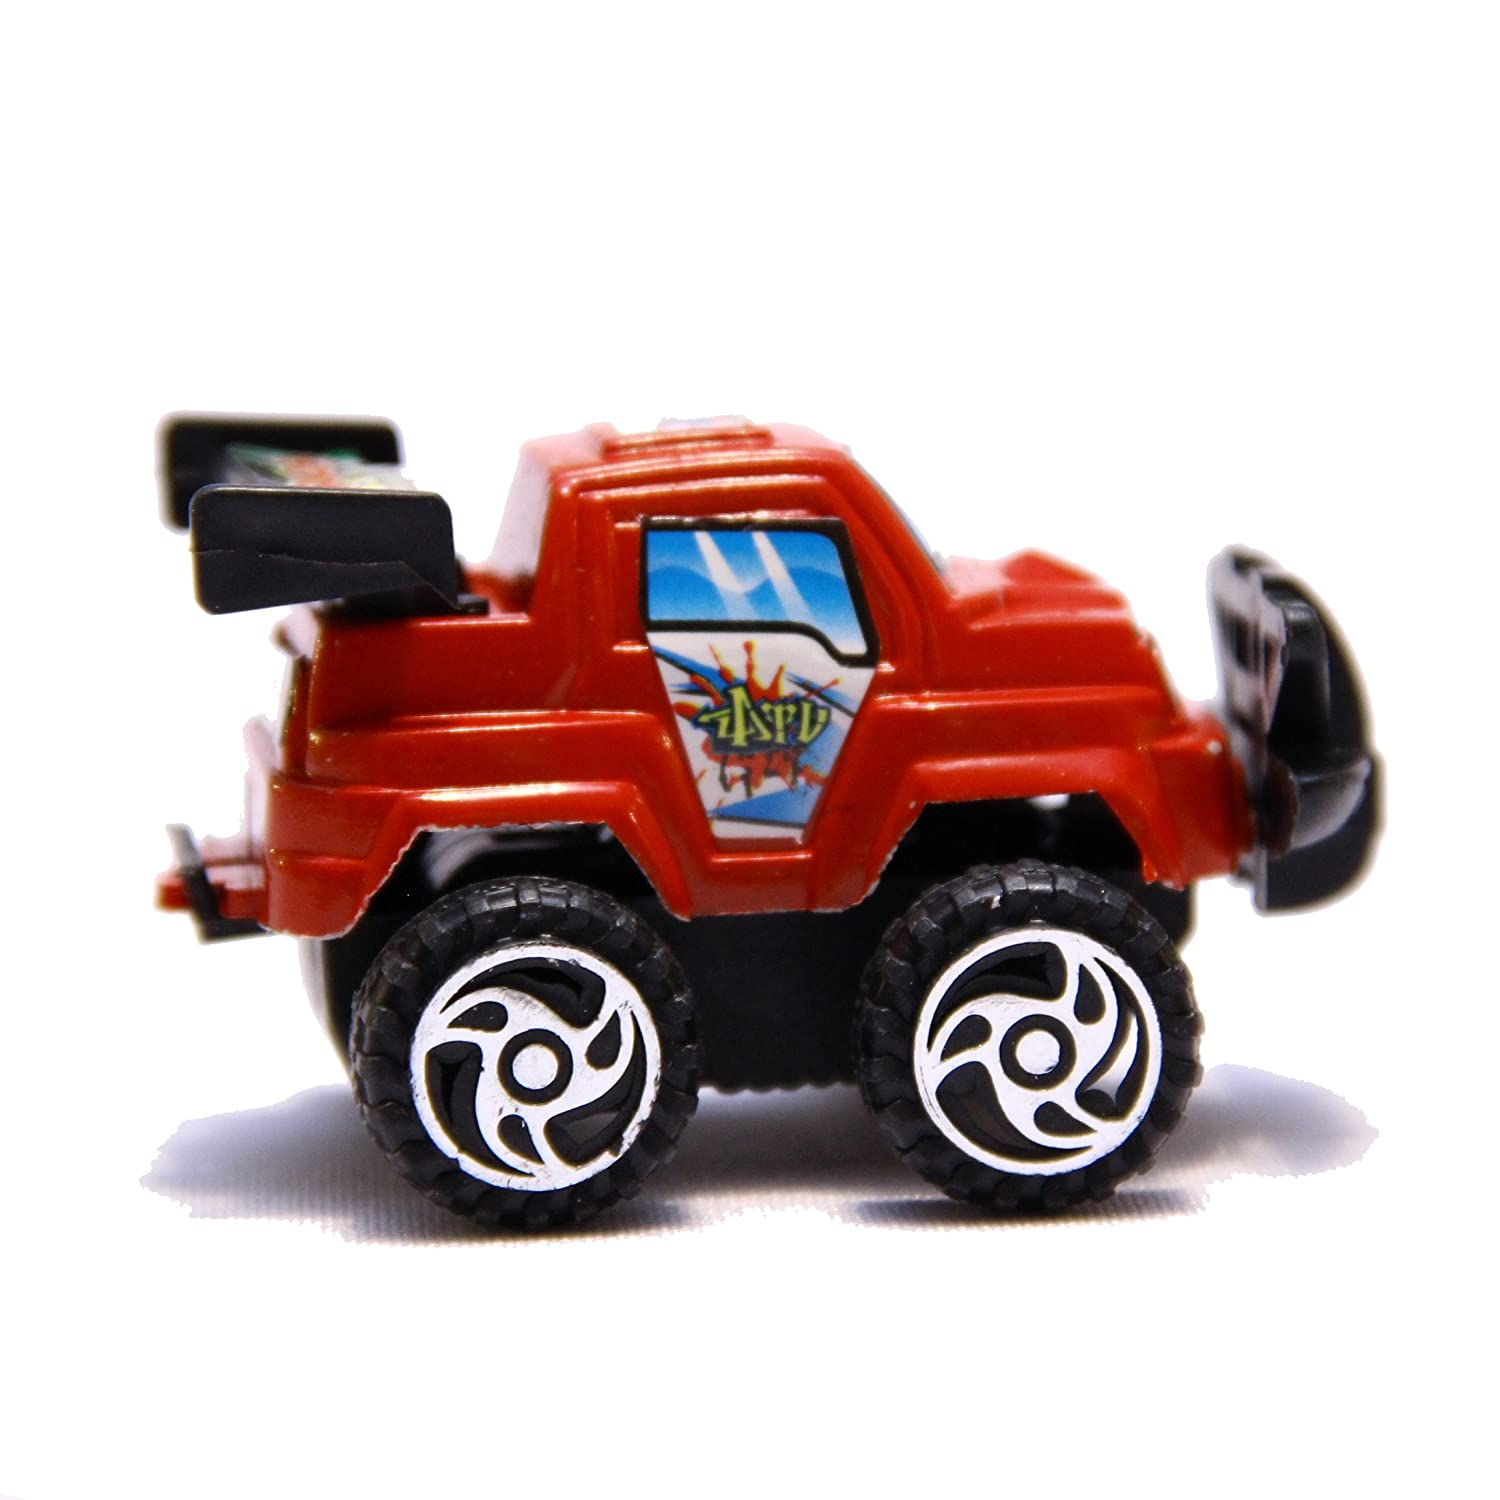 Amazon.com: dazzling toys Mini Cars Pull Back & Let Go Race Cars 12 ...